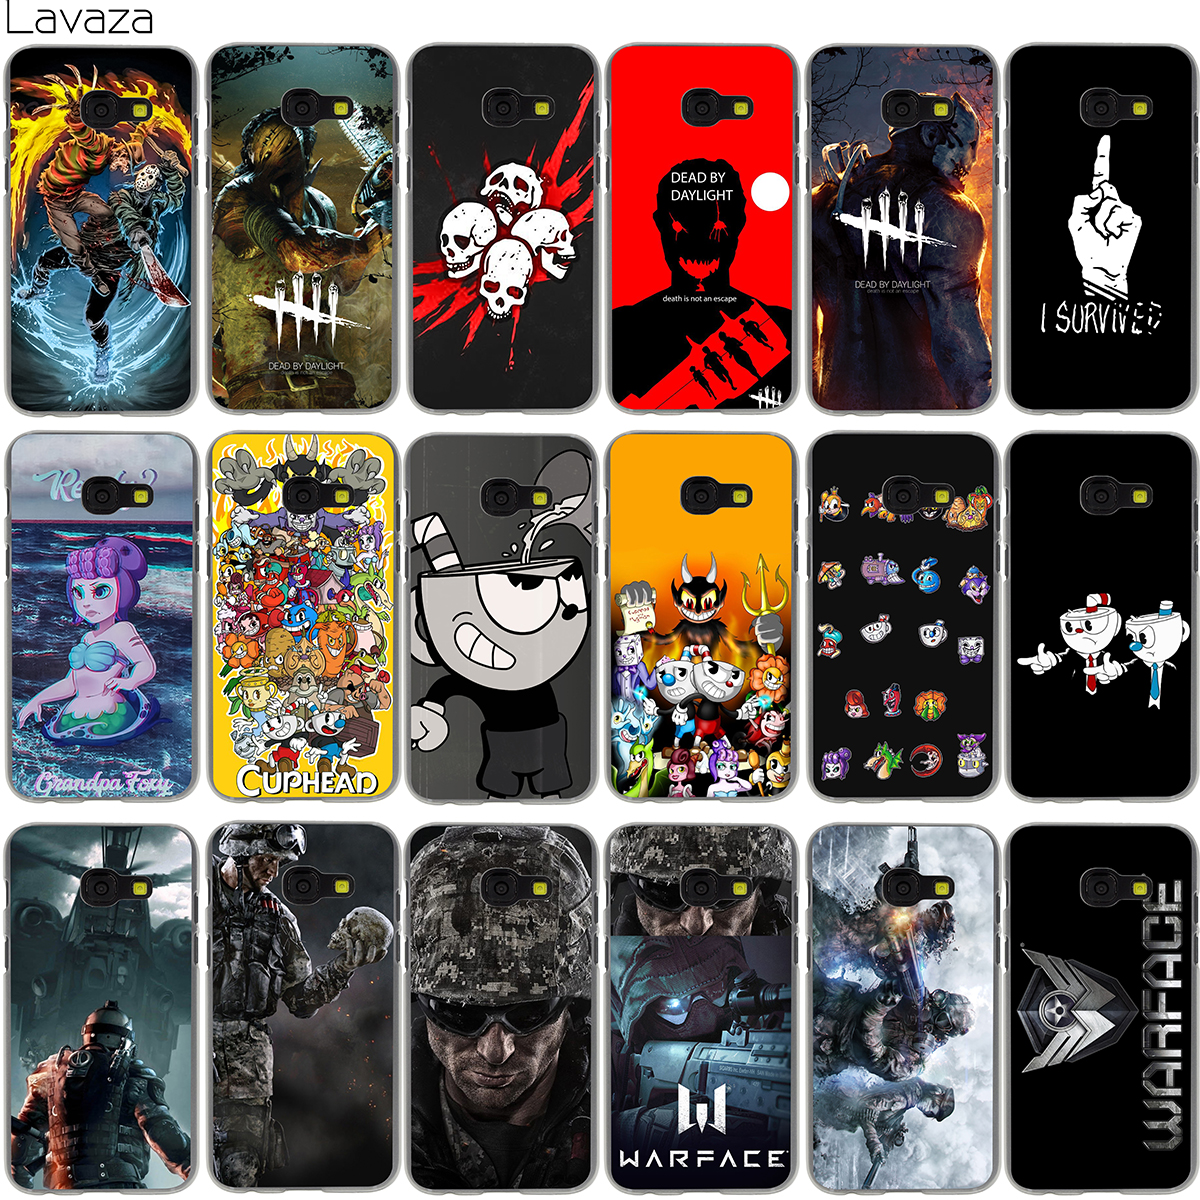 Lavaza Dead by Daylight Cuphead Warface Case for Samsung Galaxy Note 8 A3 A5 A8 J3 J5 J7 2016 2017 2018